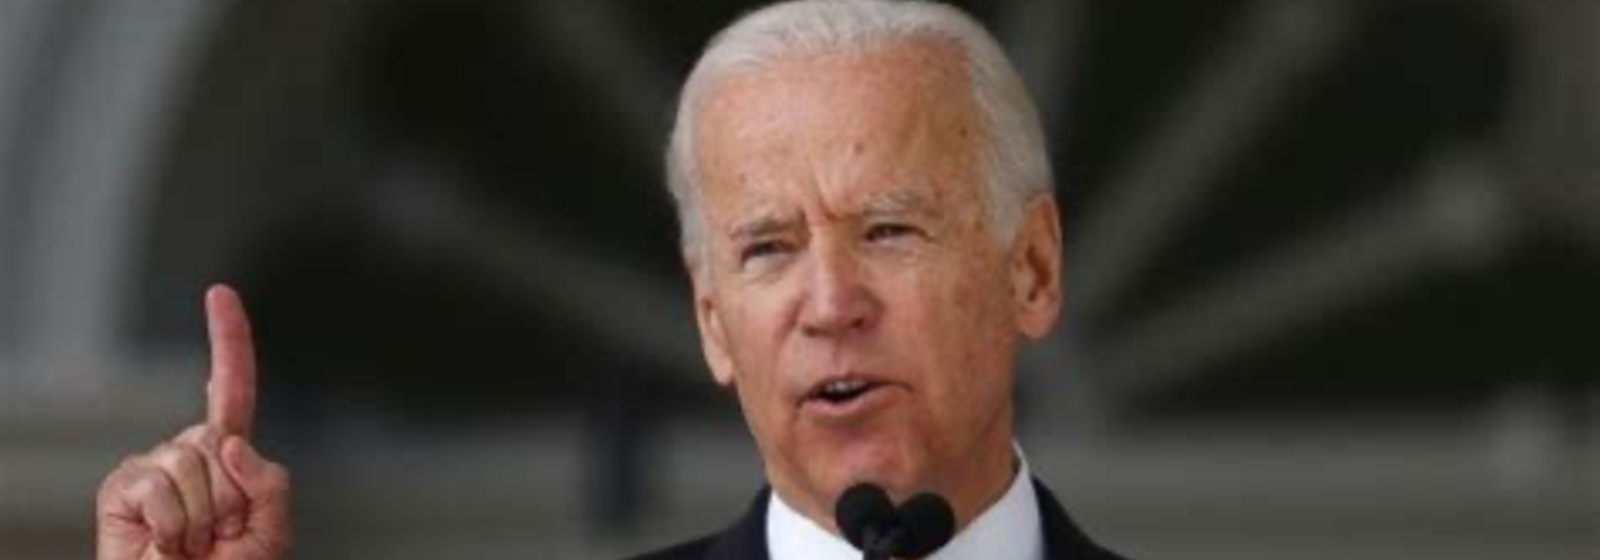 Biden Administration to Push 1619 Project in Schools